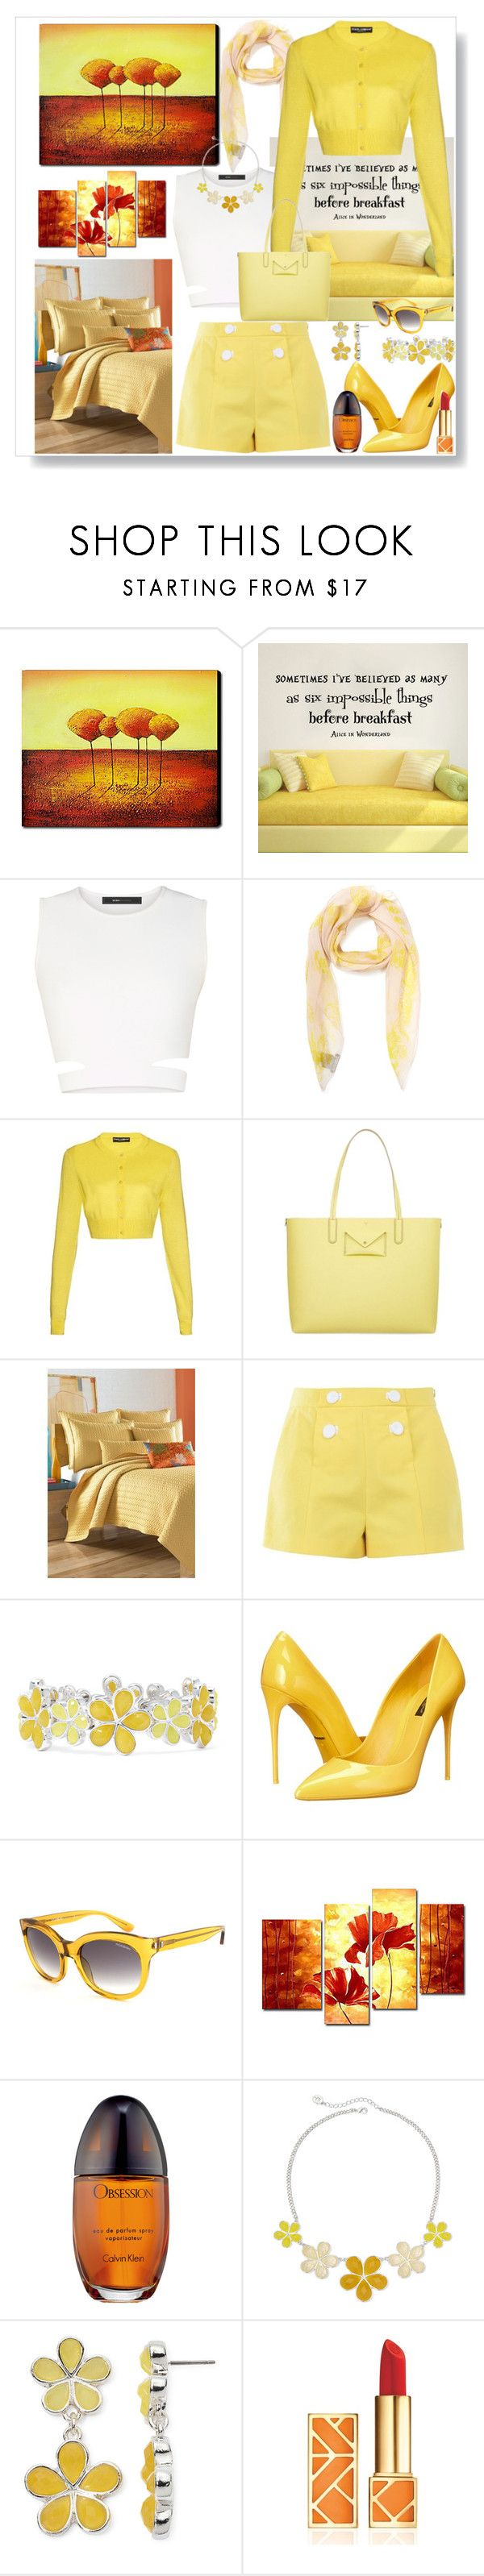 """Spring Scarf"" by ann-kelley14 on Polyvore featuring BCBGMAXAZRIA, Alexander McQueen, Dolce&Gabbana, Marc by Marc Jacobs, J. Queen New York, Boutique Moschino, Liz Claiborne, Yves Saint Laurent, Calvin Klein and Tory Burch"